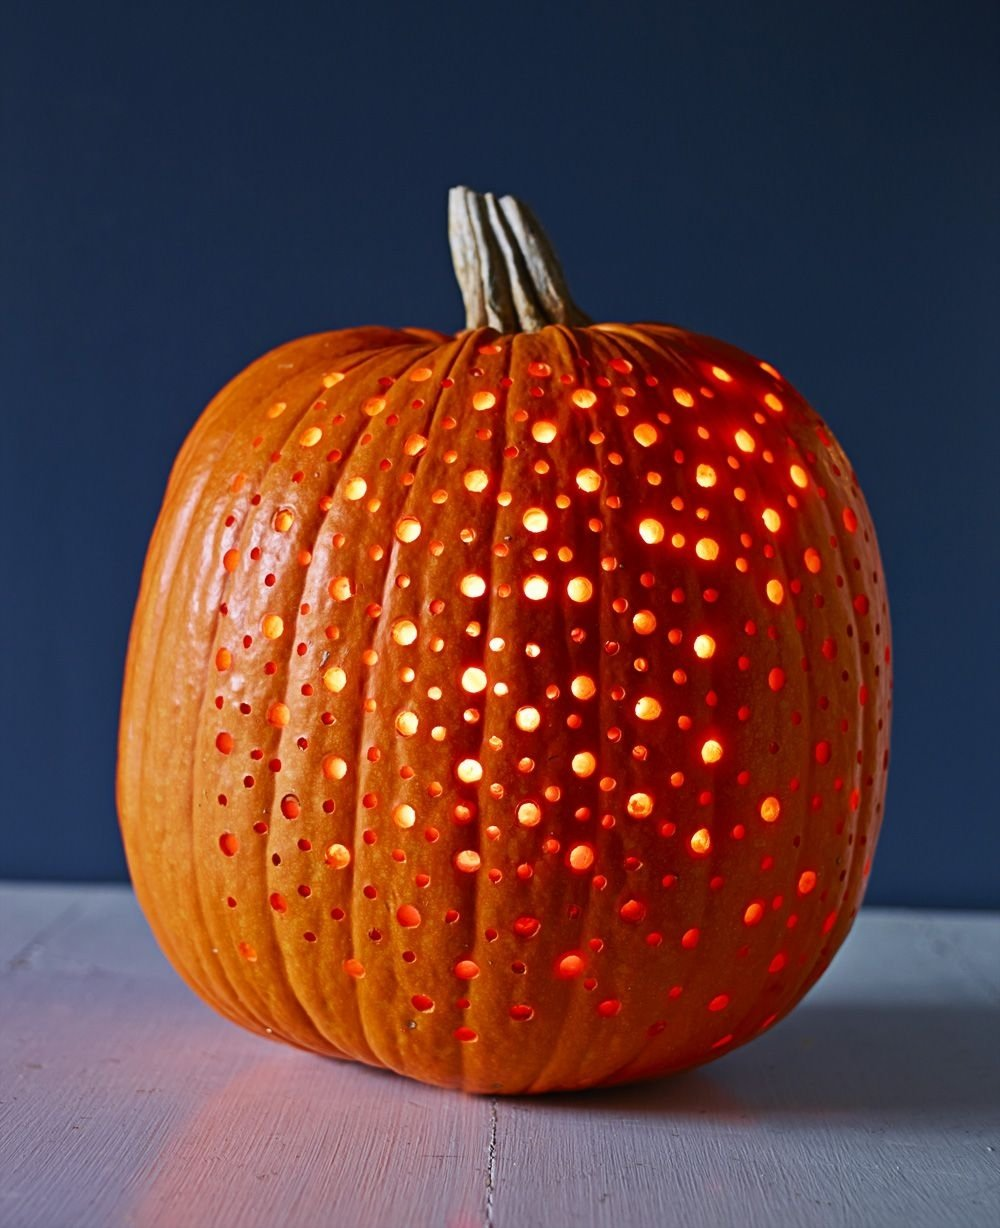 10 Lovable Cool And Easy Pumpkin Carving Ideas 60 pumpkin decorating ideas and designs for halloween pumpkin 8 2020